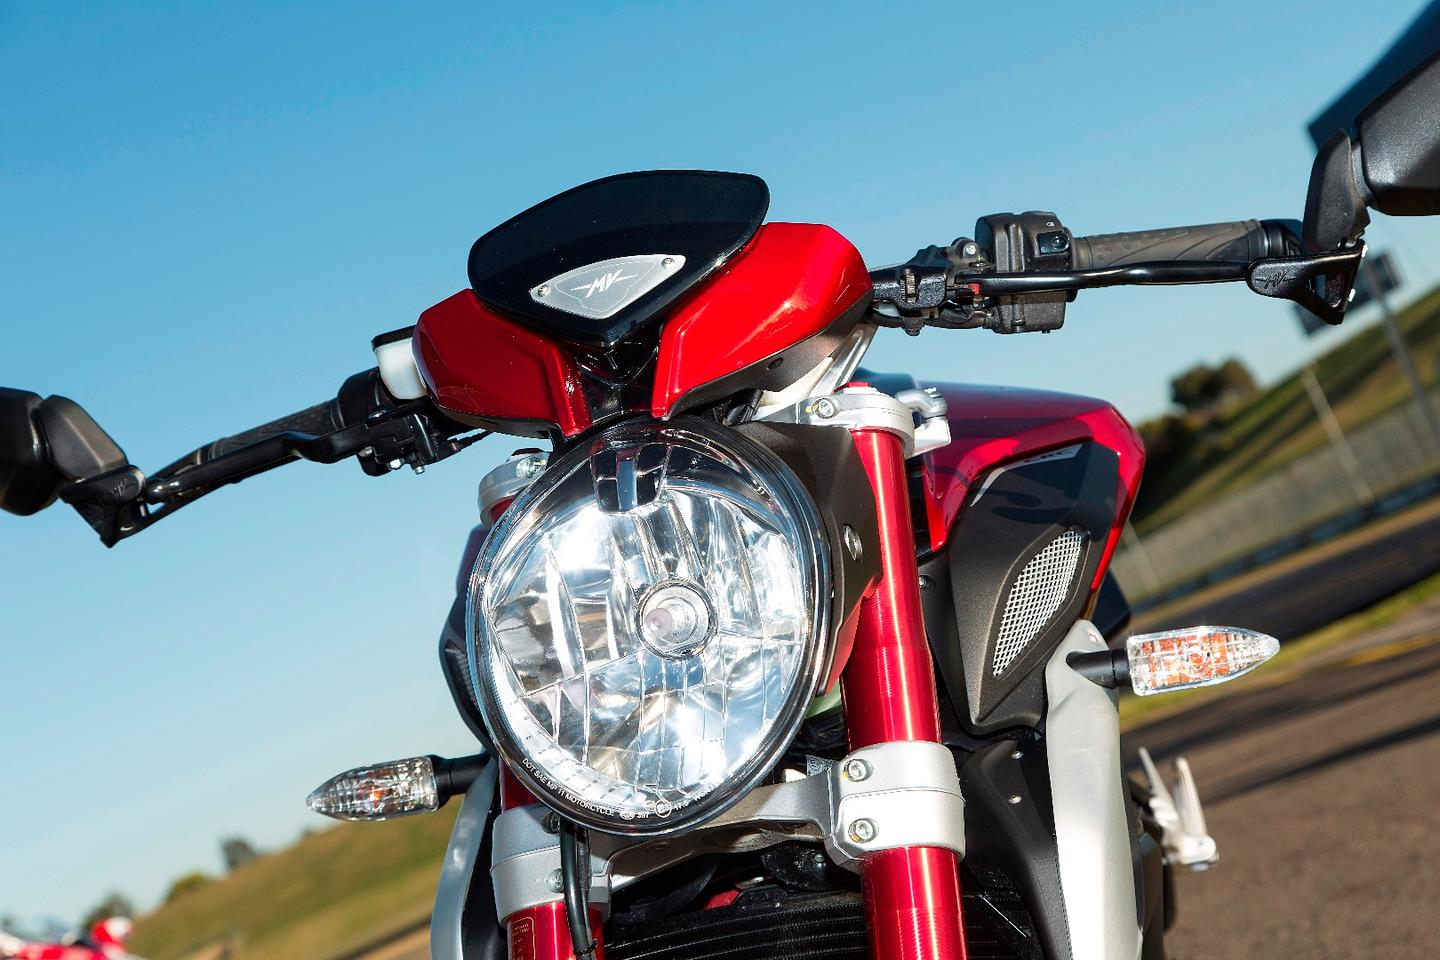 MV Agusta Dragster 800 RR: headlight and blood-red Marzocchi forks